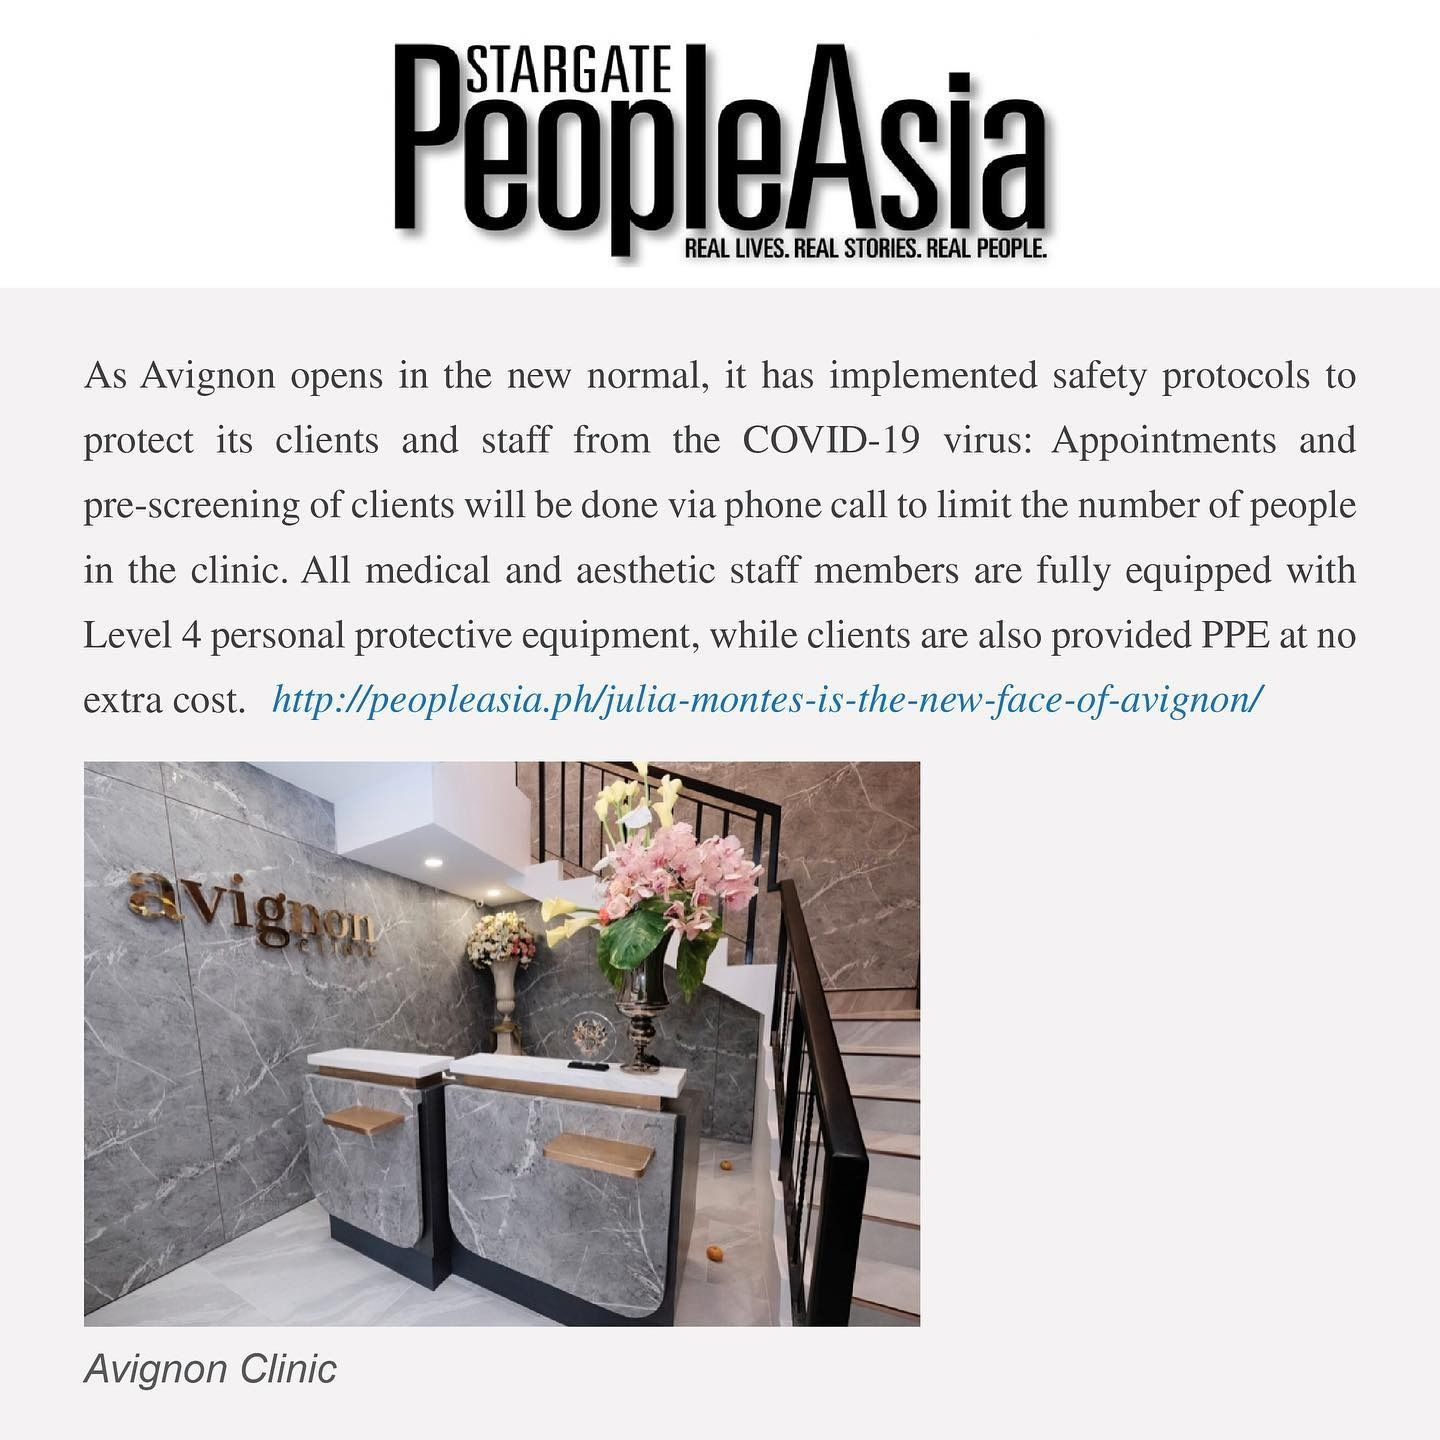 People Asia Features Avignon Clinic In 2020 Real People Avignon Clinic